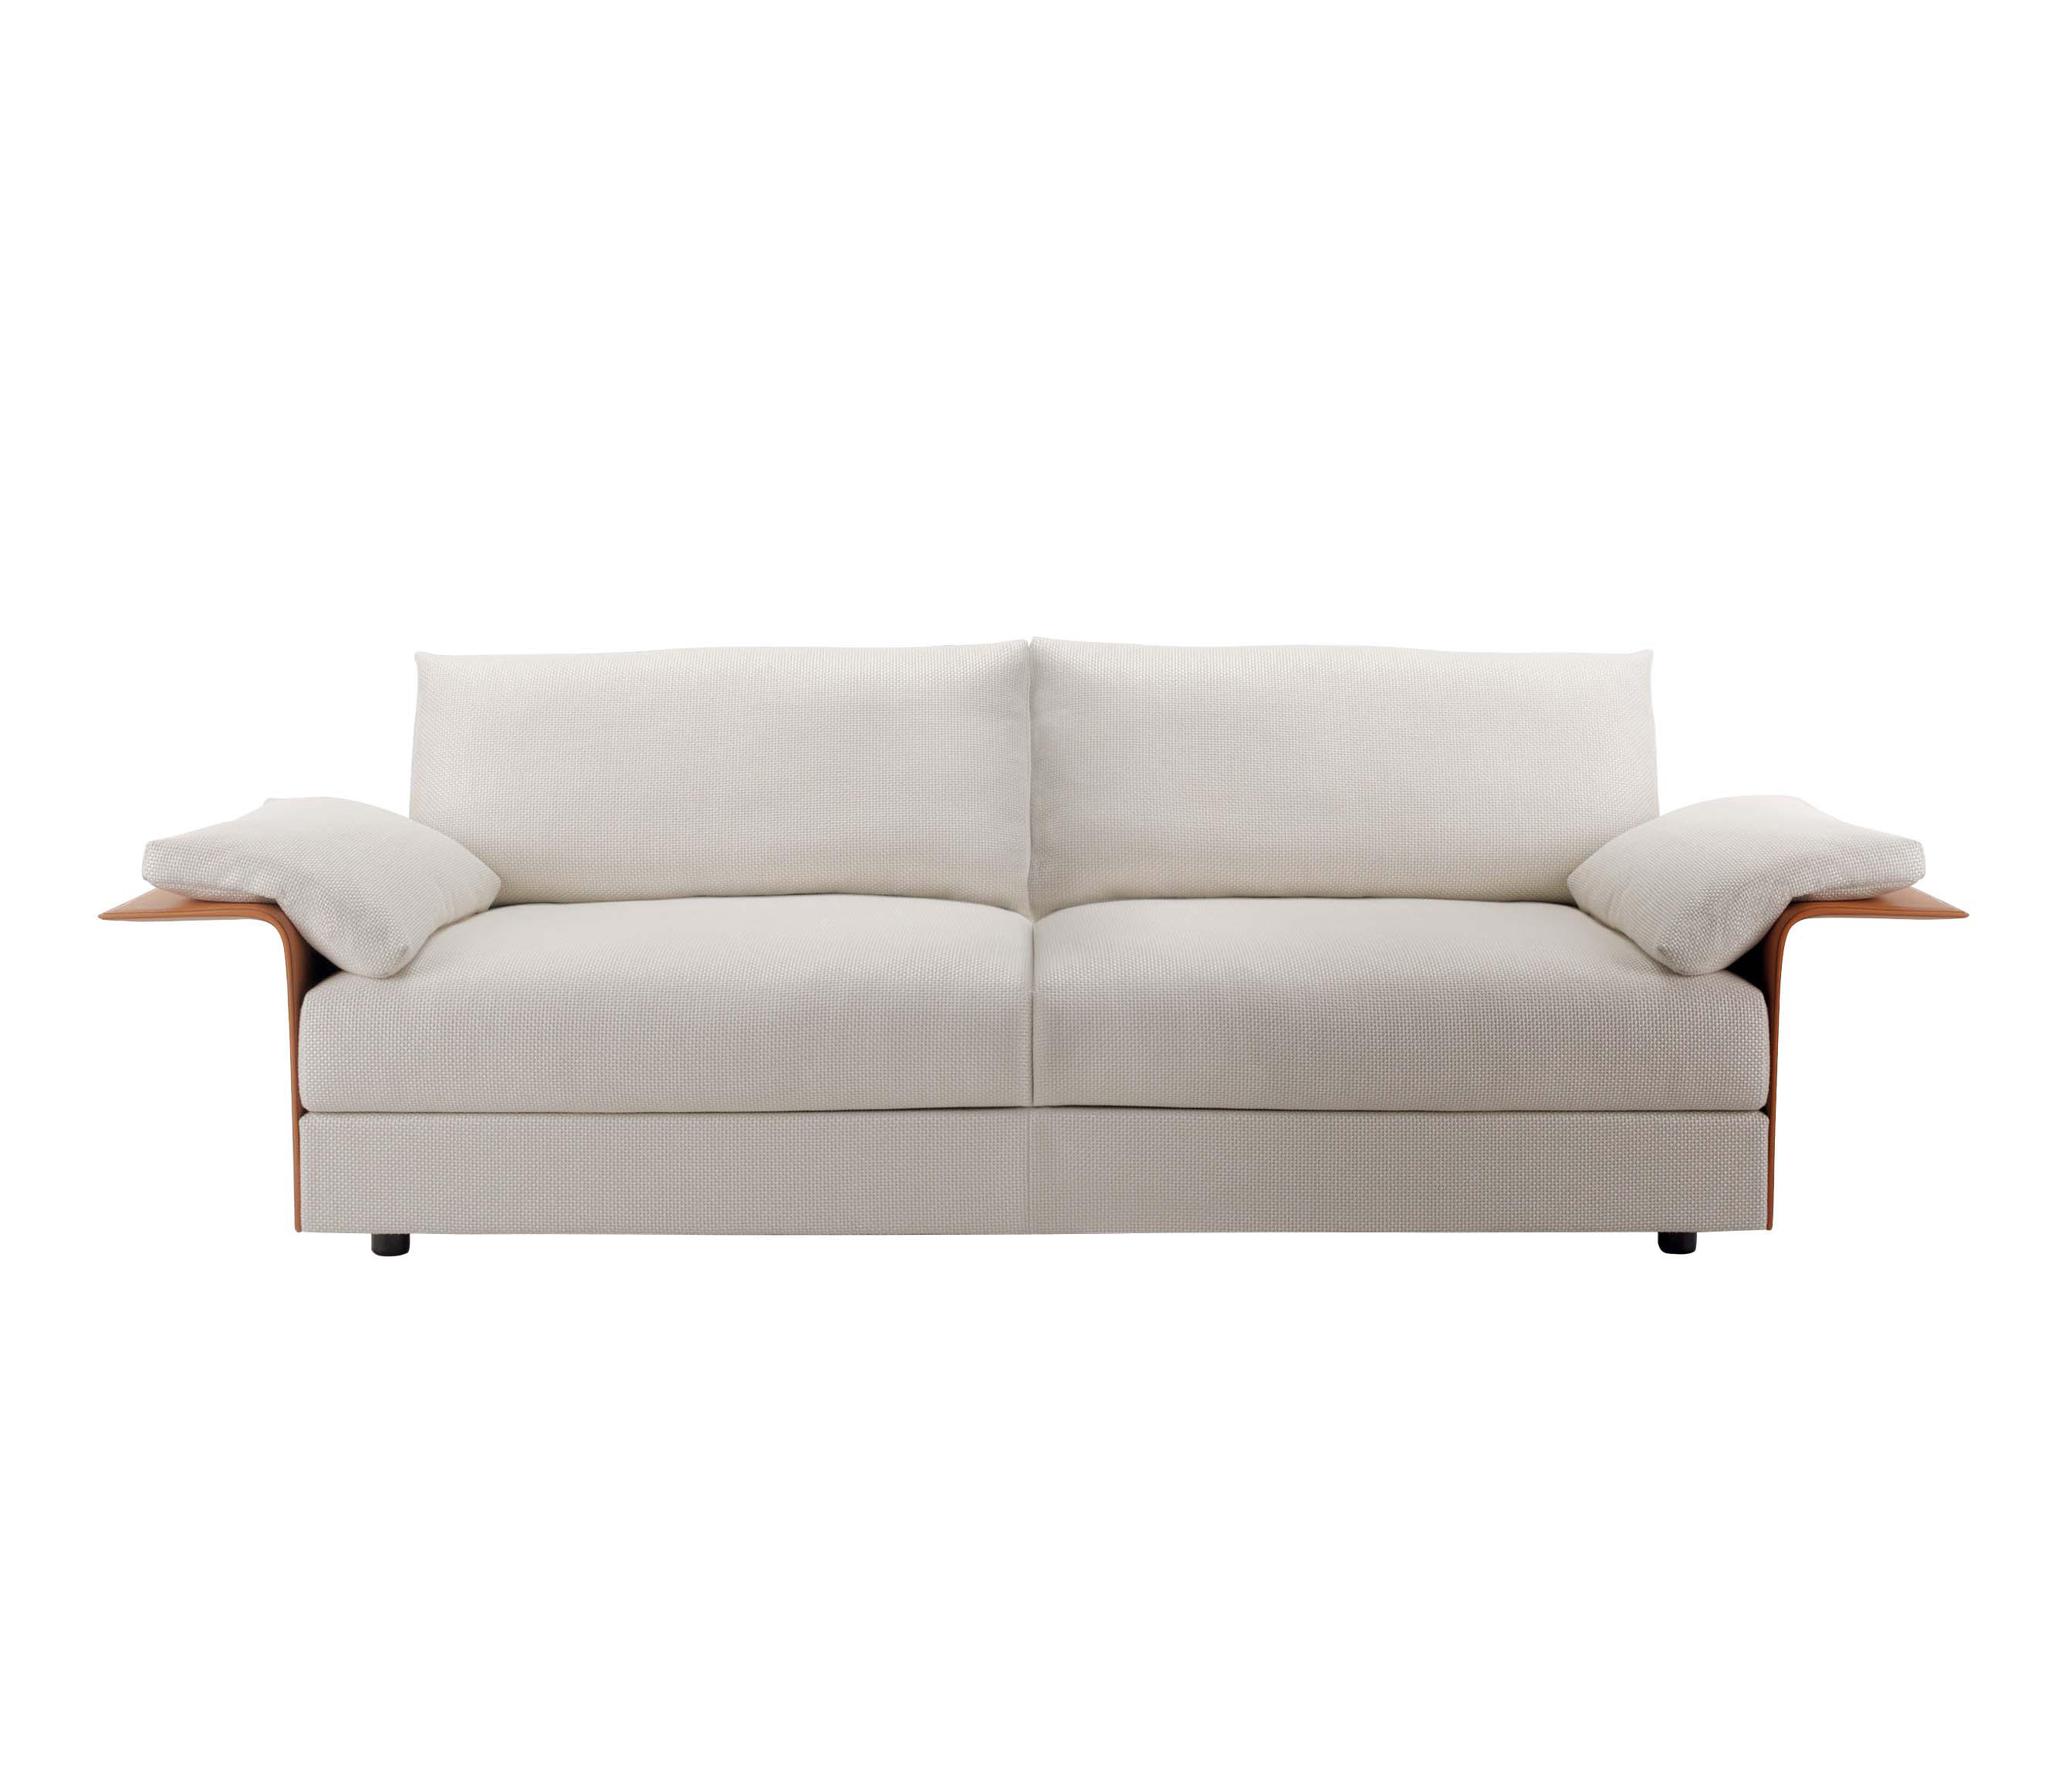 HAMPTON SOFA Lounge sofas from Fendi Casa